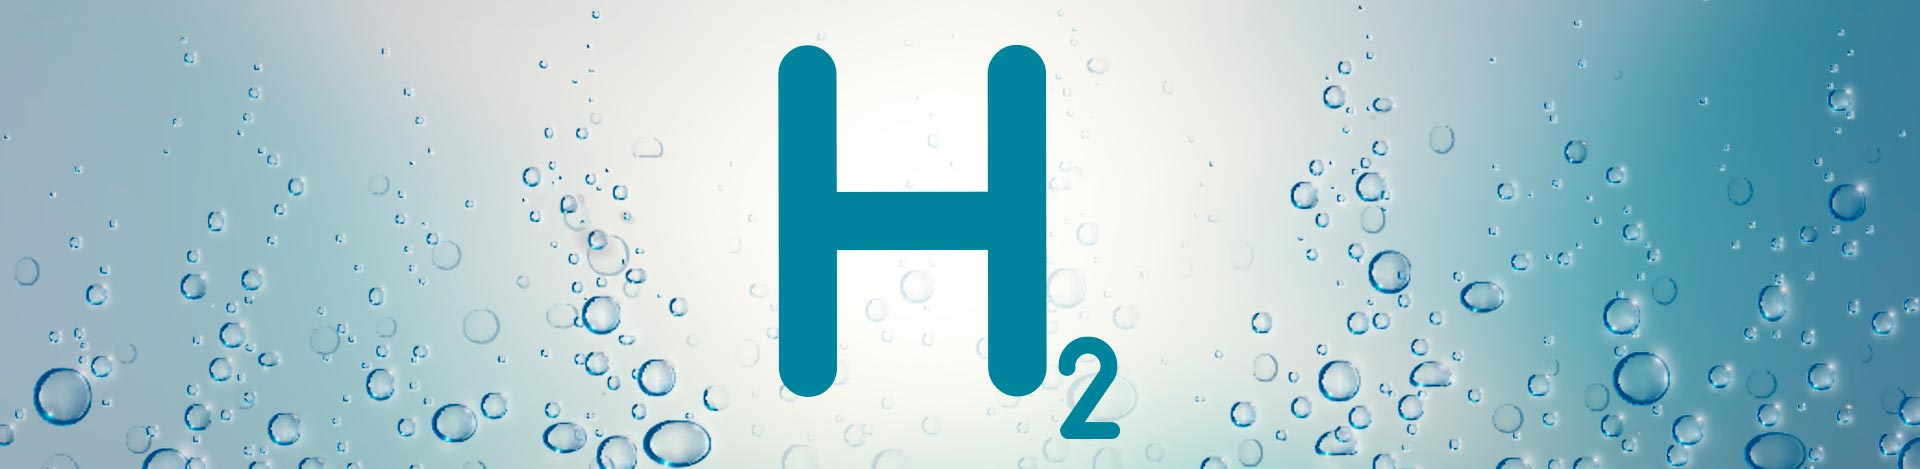 The making of Hydrogen – Definition and acceleration of a sector